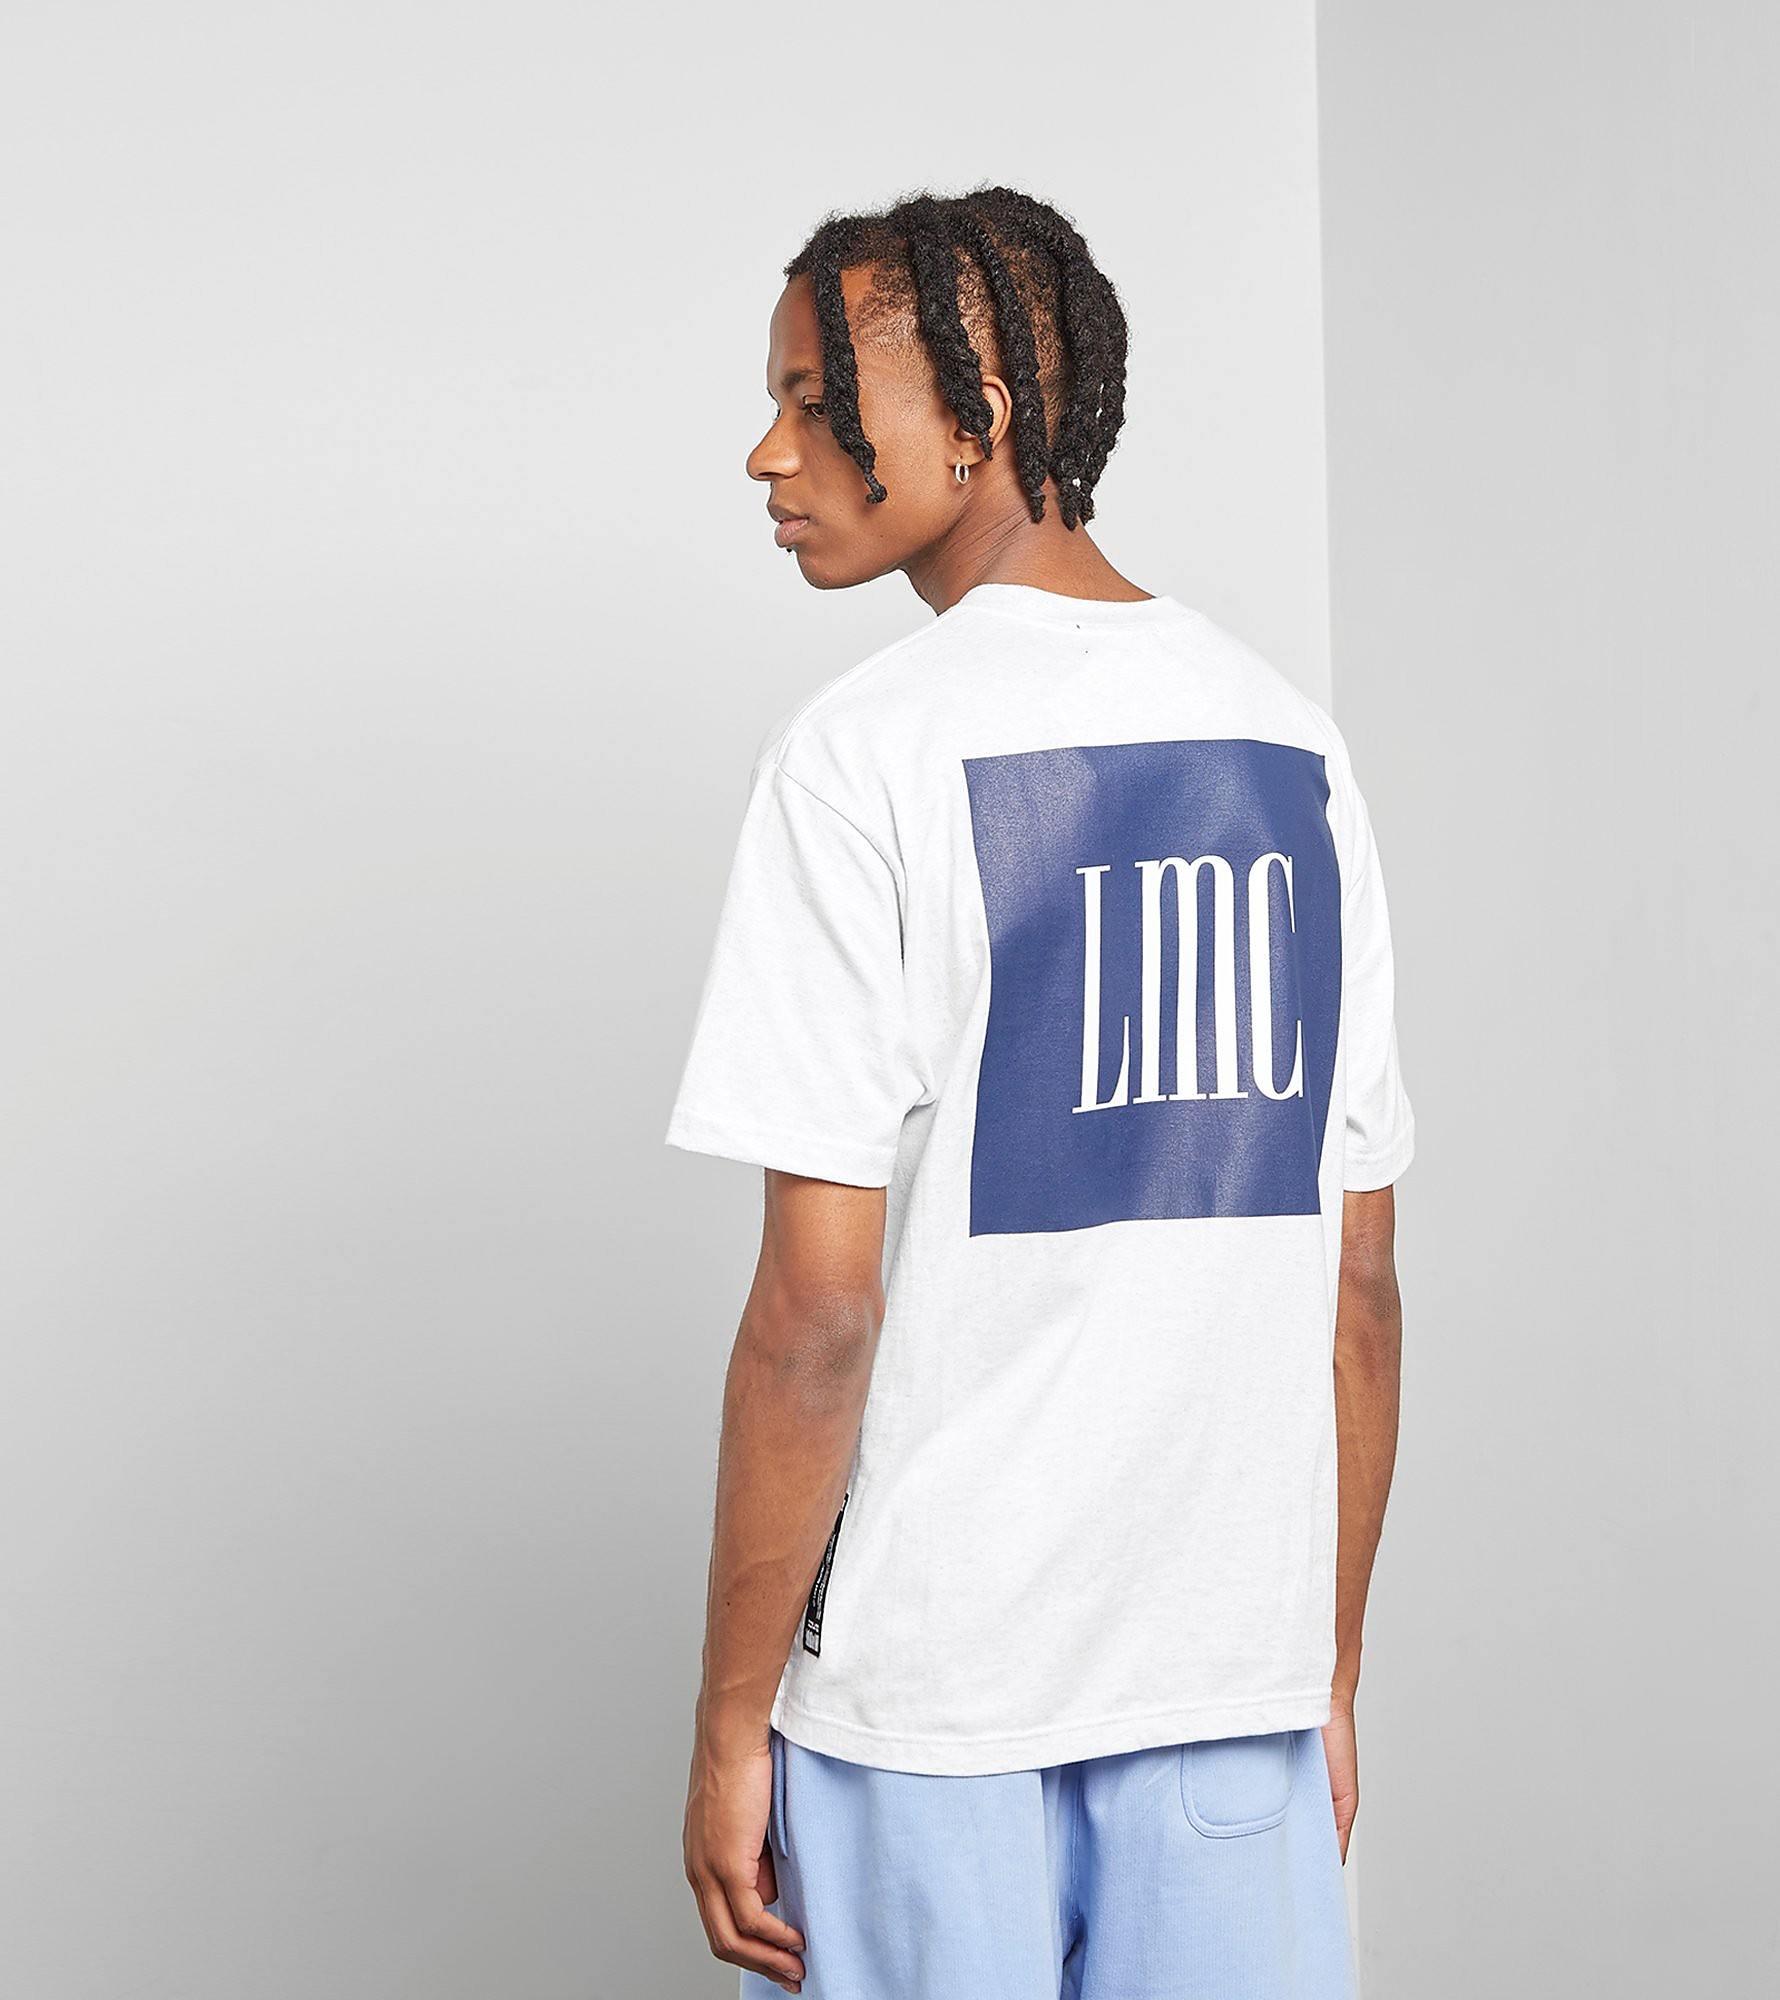 Lost Management Cities T-Shirt Navy Box, Gris